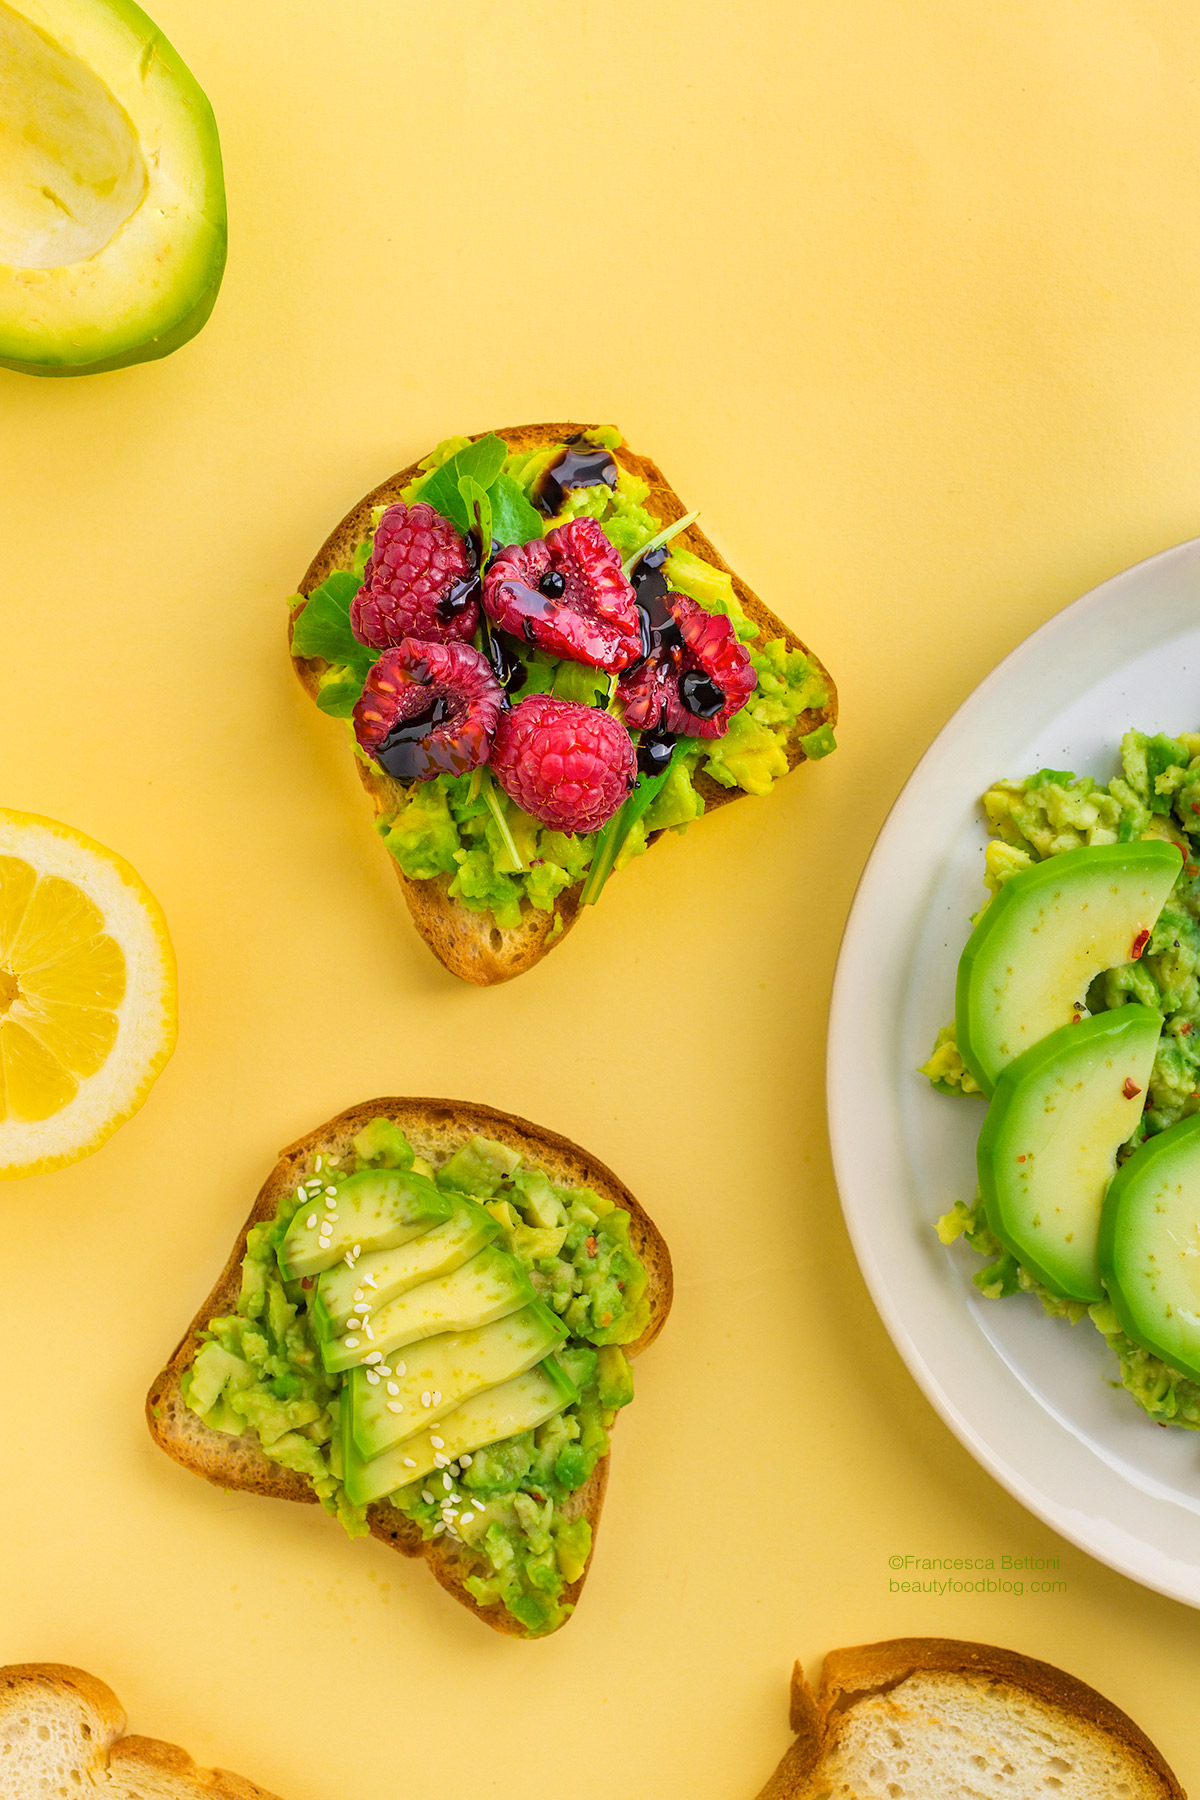 easy glutenfree vegan avocado toast recipe with raspberry and arugola -ricetta avocado toast vegan senza glutine con lamponi facile e veloce con tre varinti